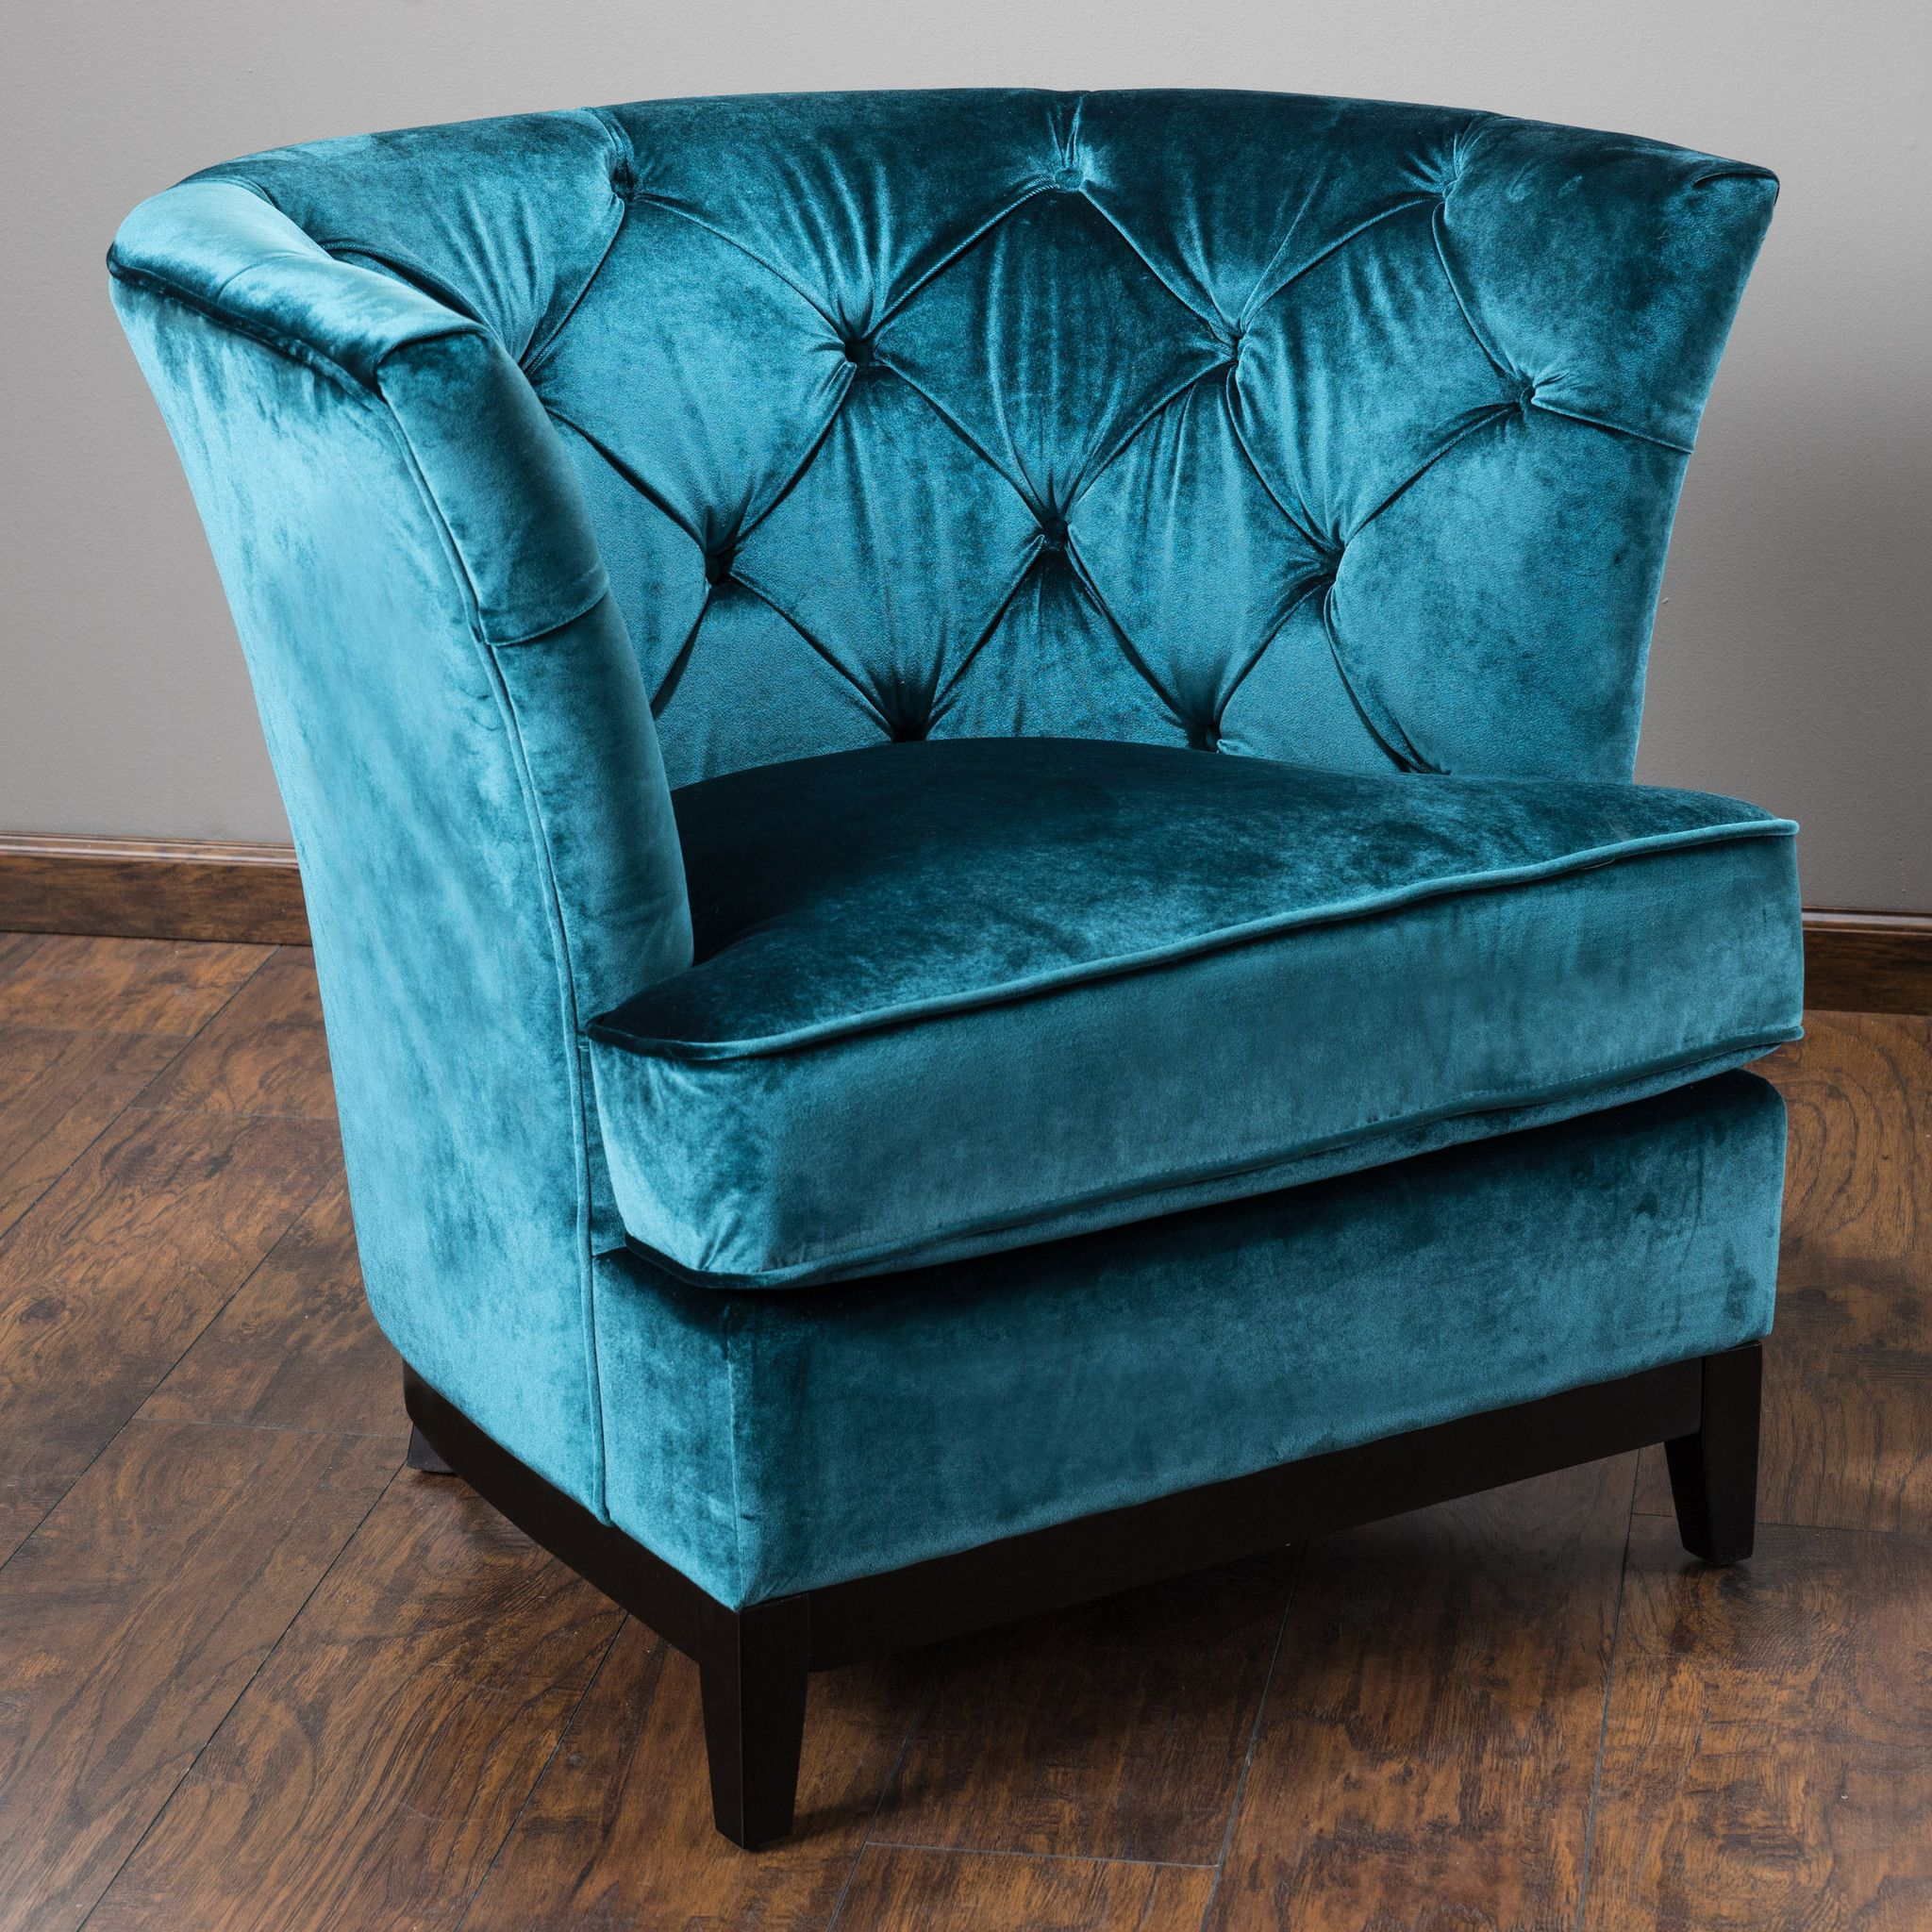 Best Anabelle Modern Glam Tufted Teal Blue Velvet Upholstered 400 x 300